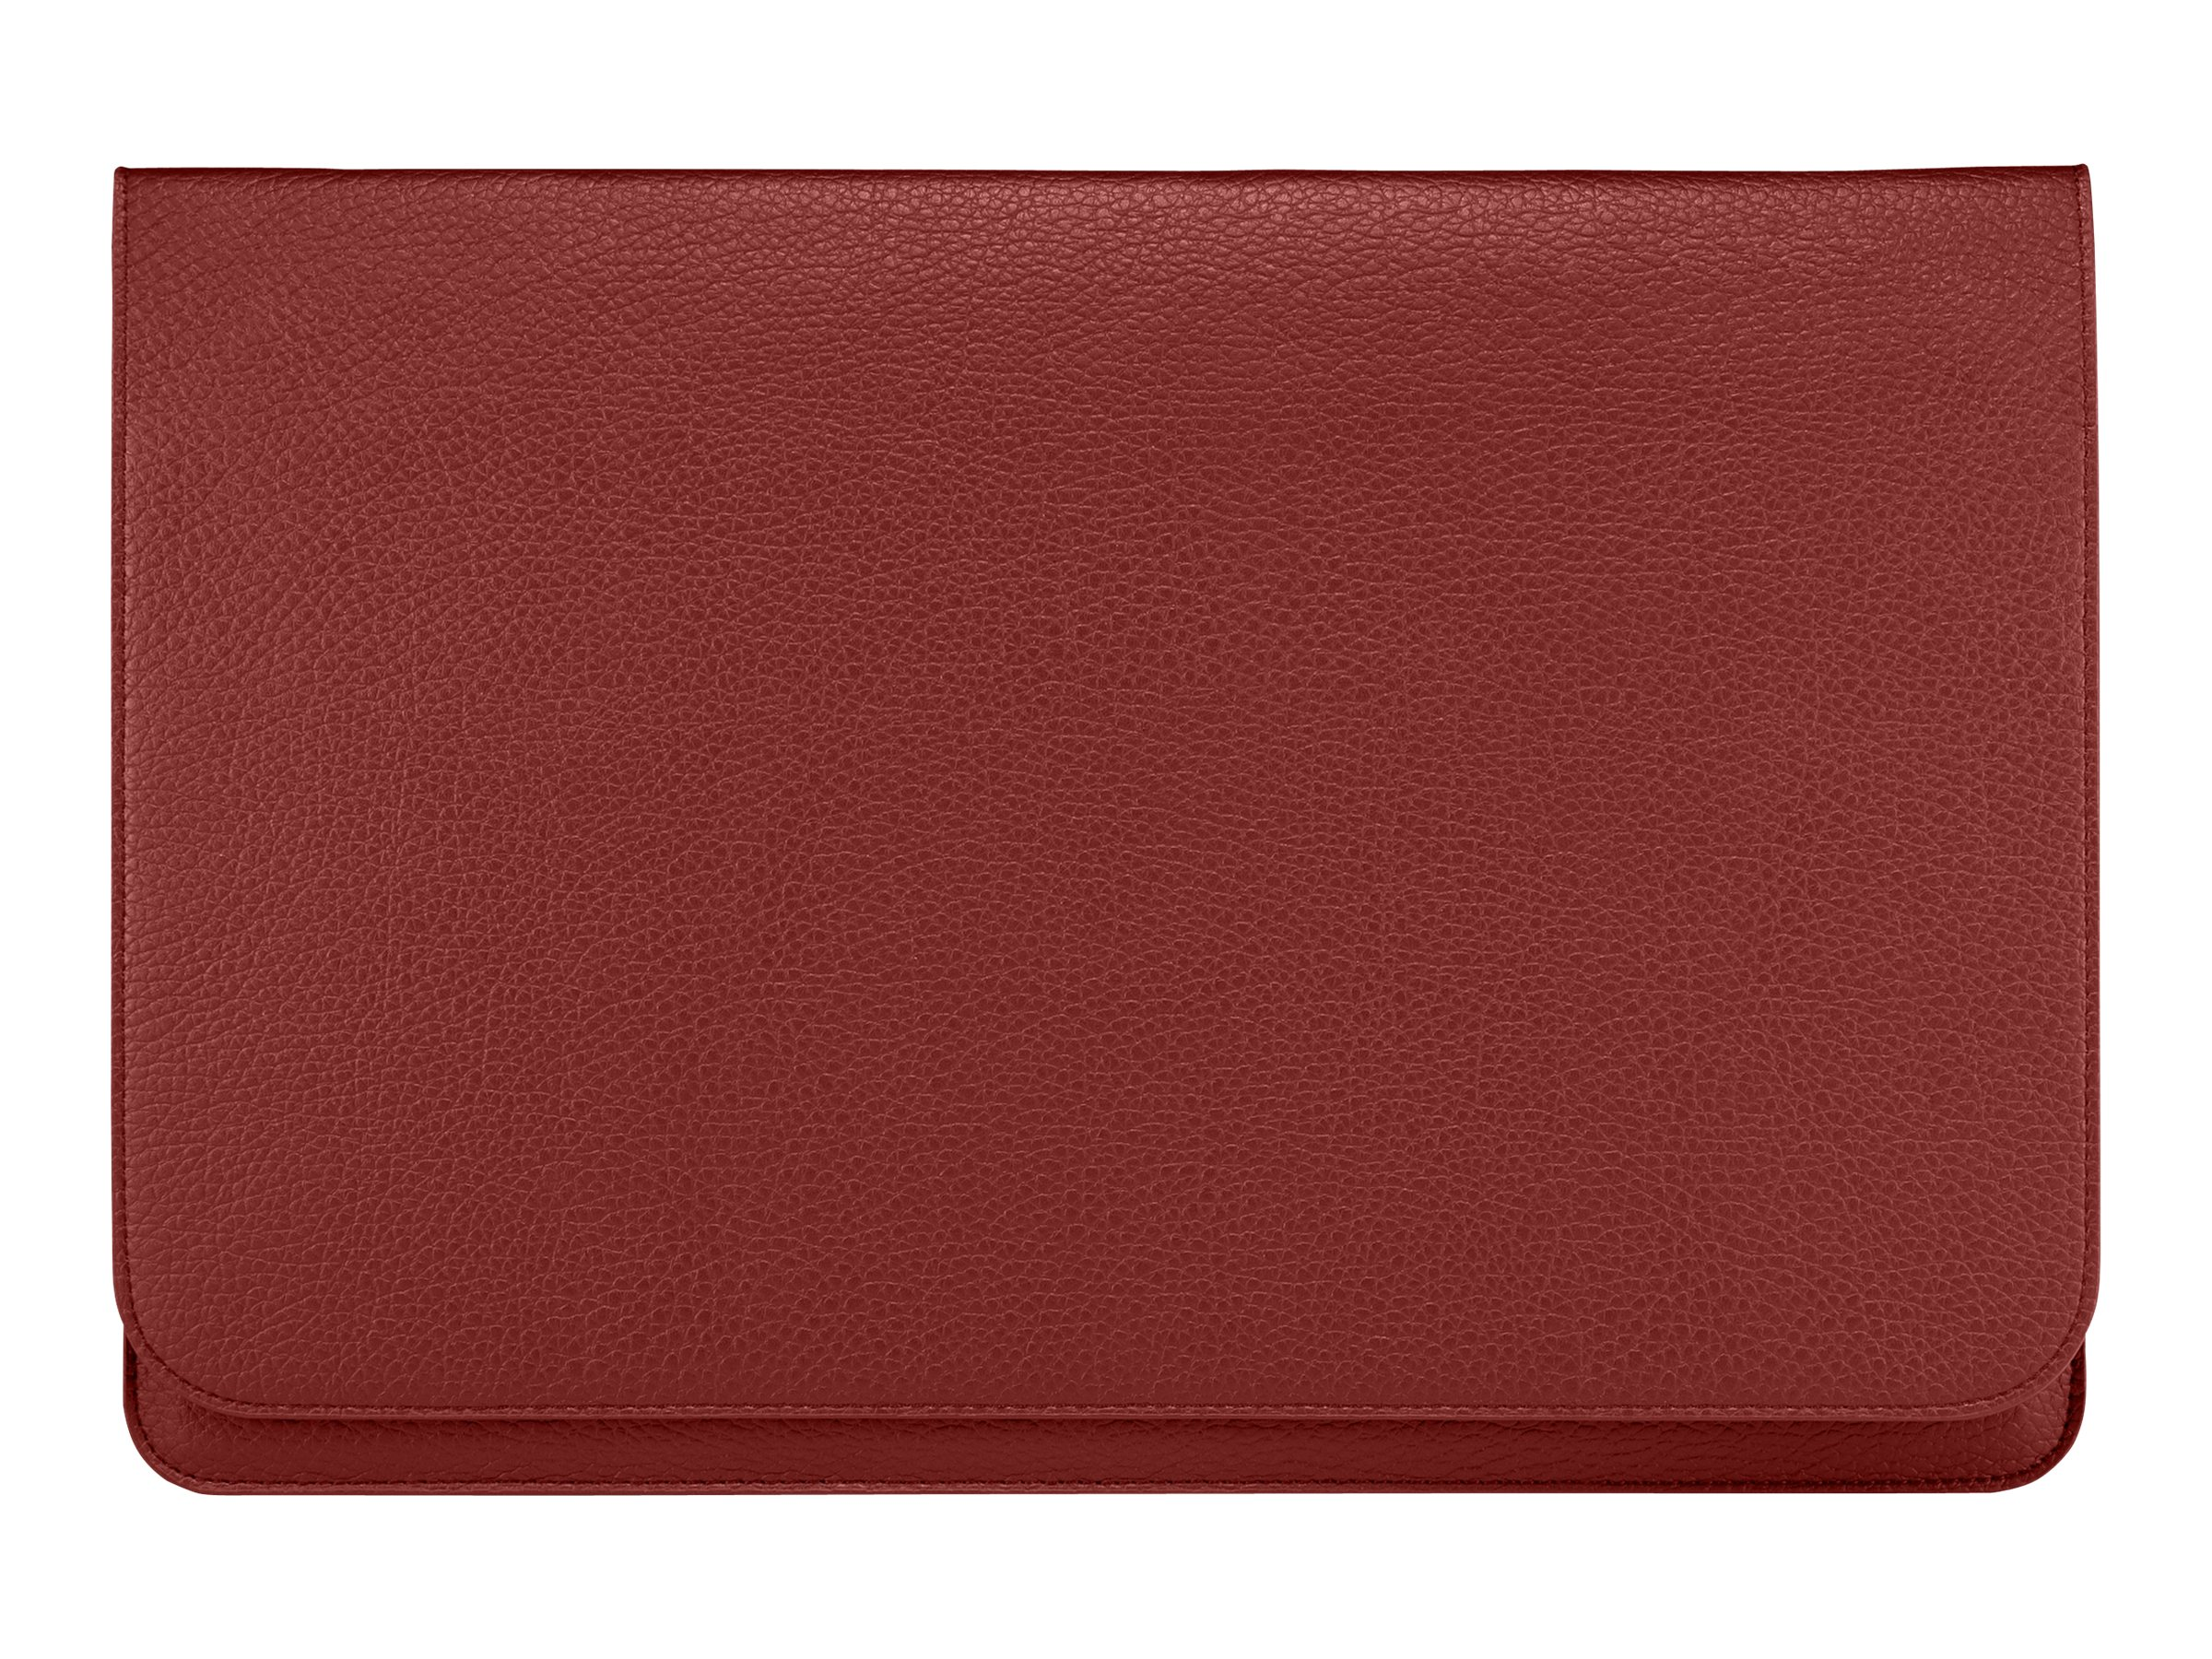 Samsung Ultrabook 13.3 Leather Pouch, Red